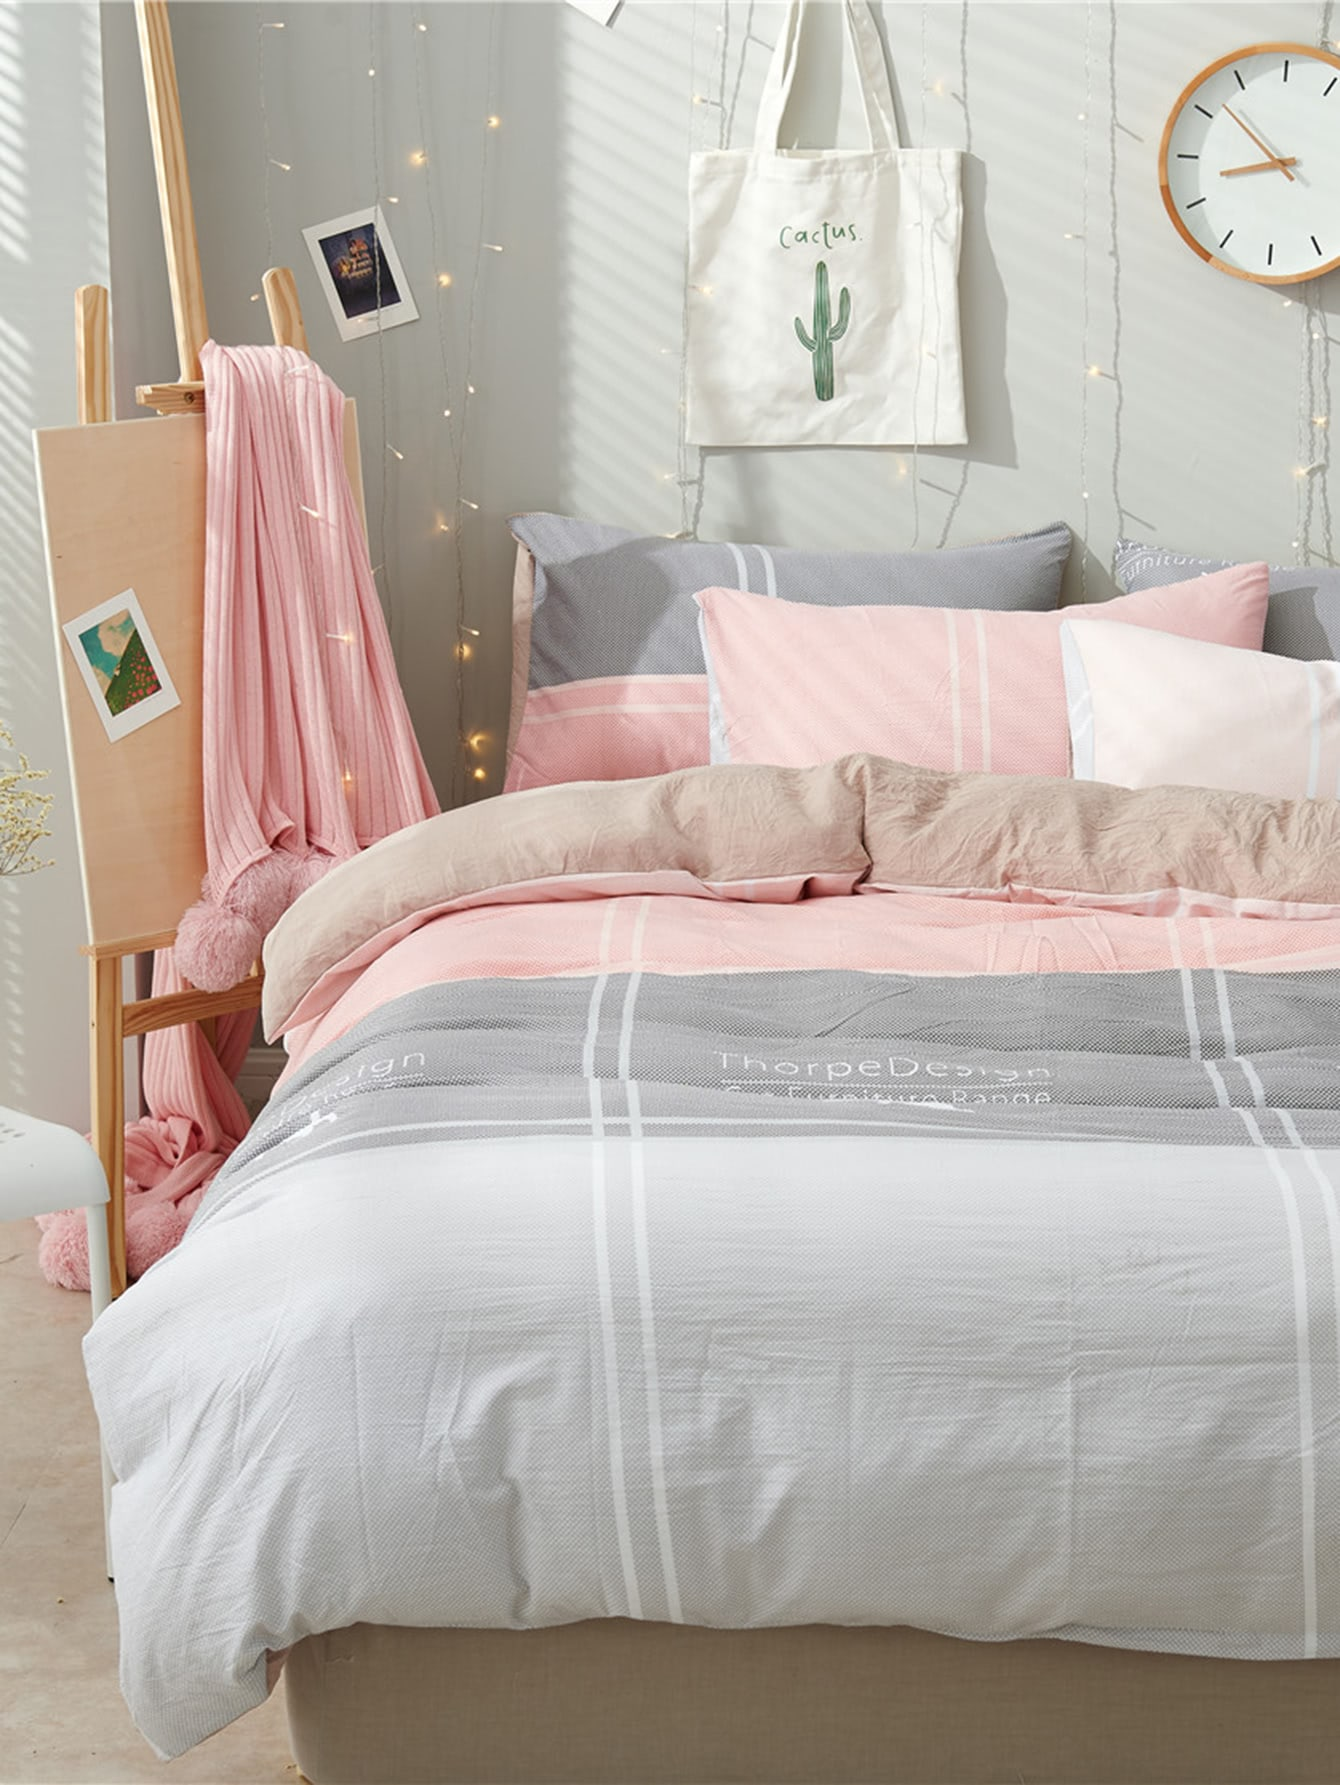 2.0m 4Pcs Letter Print Striped Bed Sheet Set